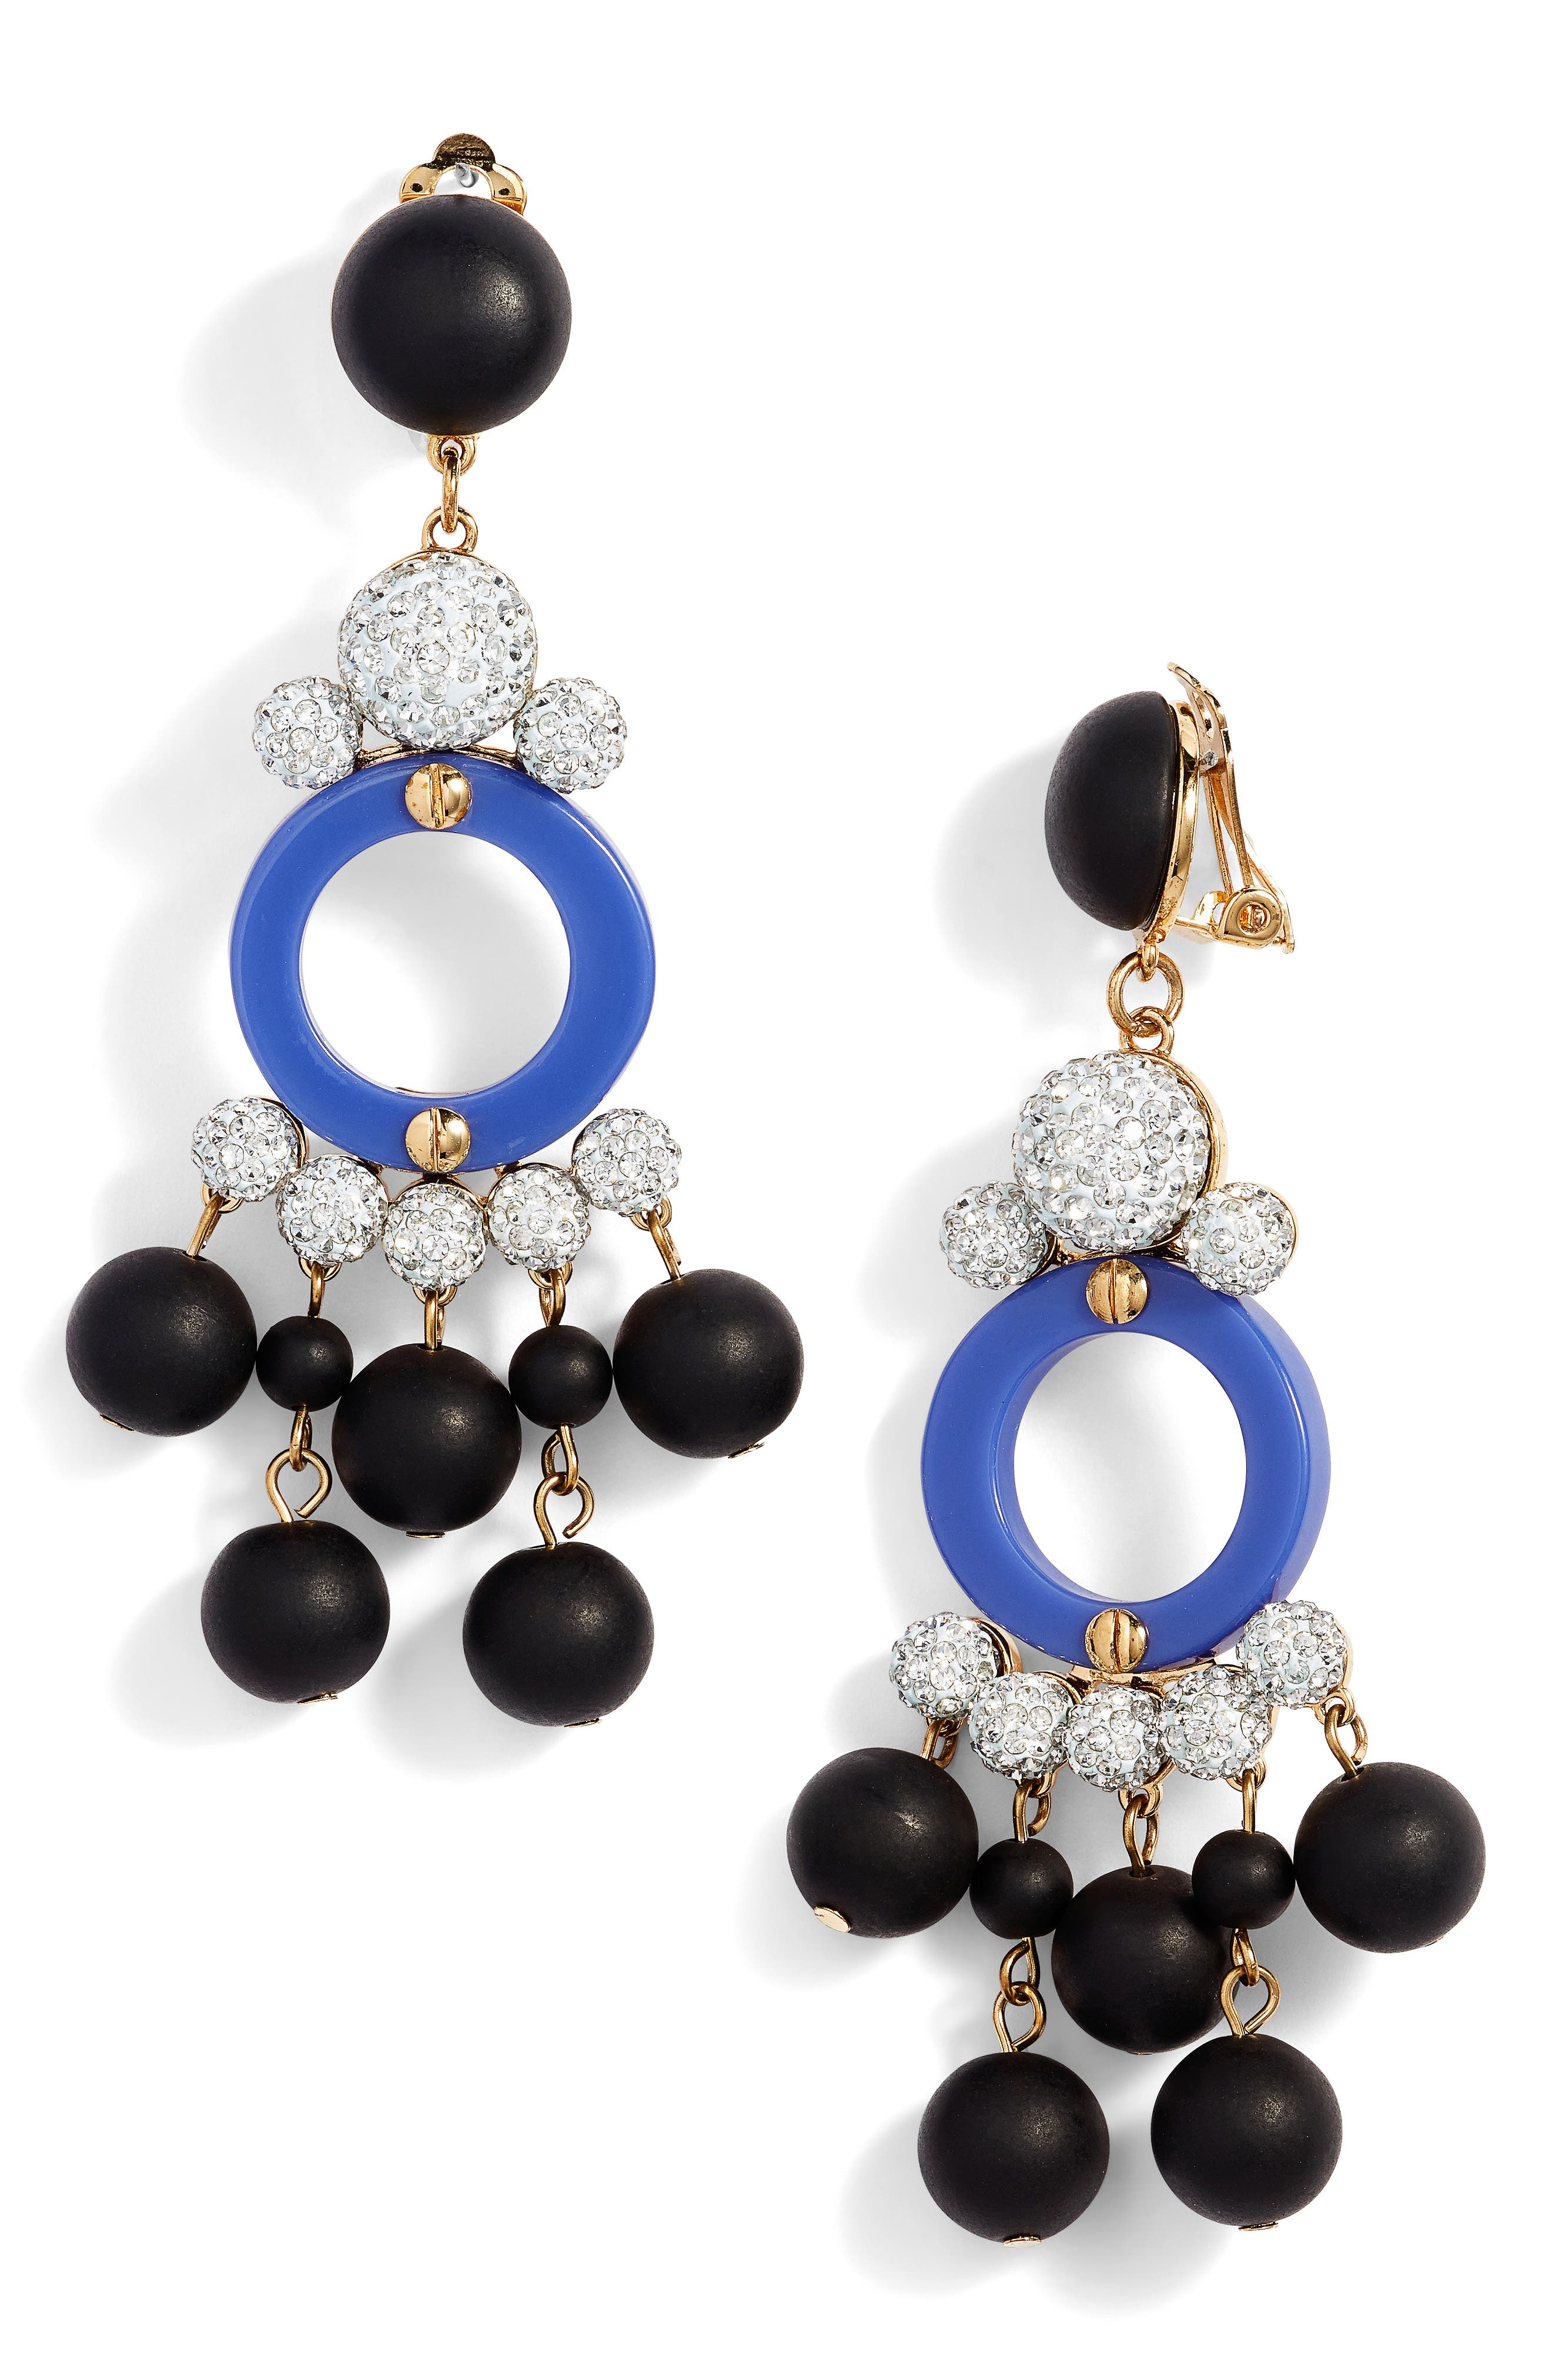 Boulevard Clip Drop Earrings,                             Main thumbnail 1, color,                             001